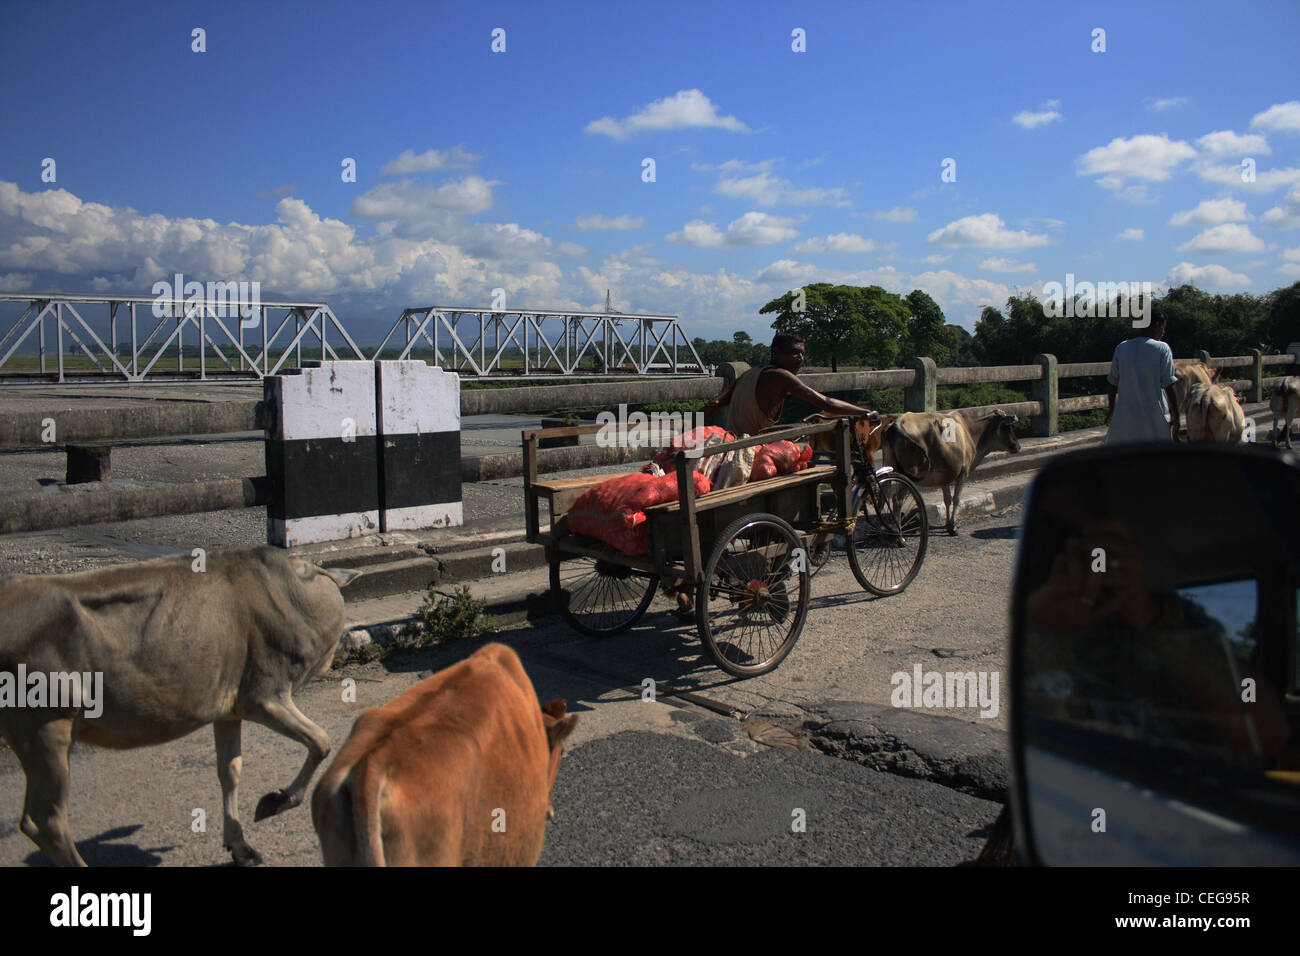 Animals on highways - Stock Image